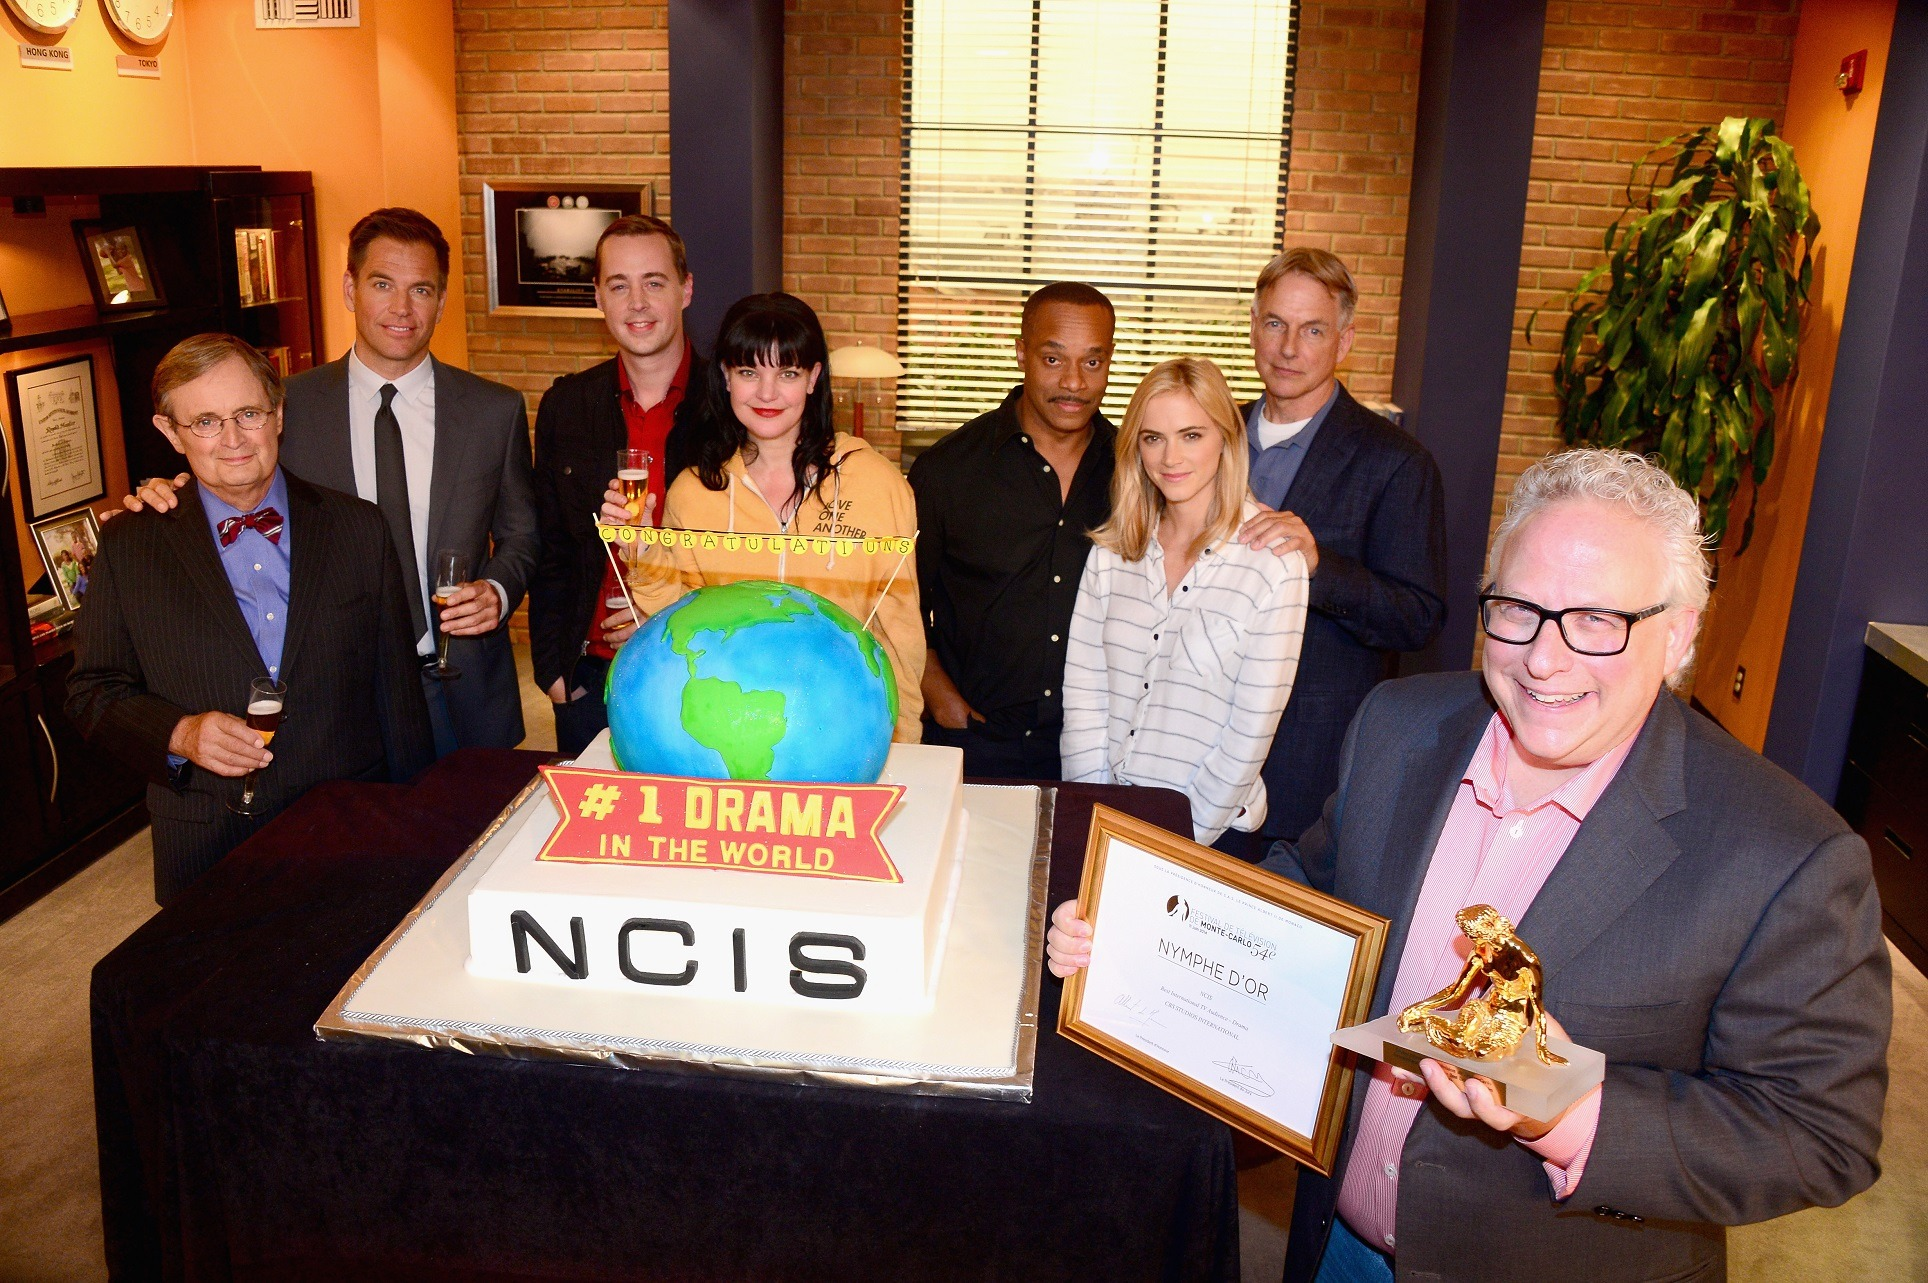 David McCallum (left), Sean Murray (second from left), and the cast of NCIS.